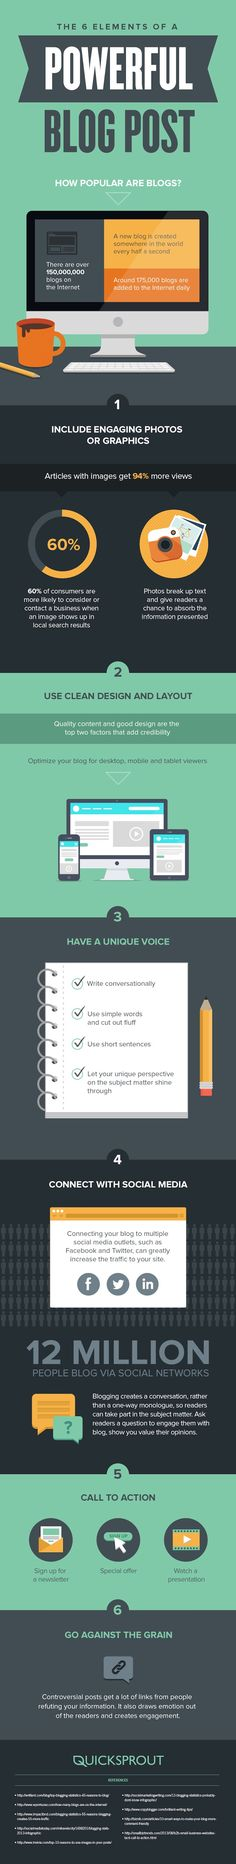 The 6 Elements of a Perfect Blog Post - #infographic